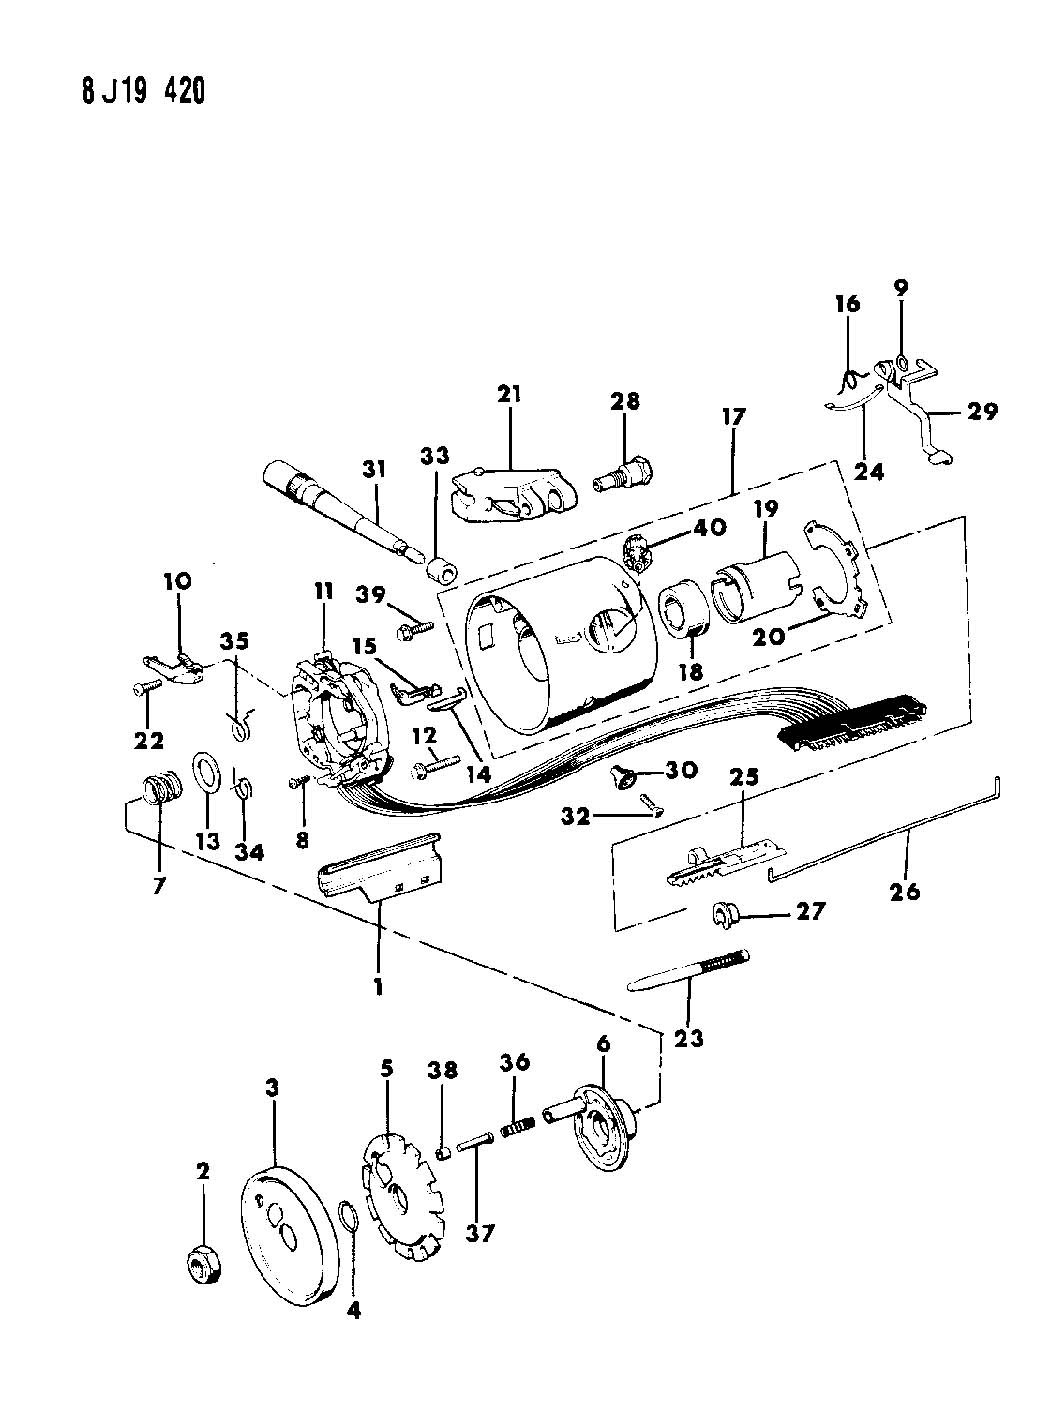 Jeep Yj Steering Column Wiring Diagram Library 90 Diagrams 1989 Wrangler 5